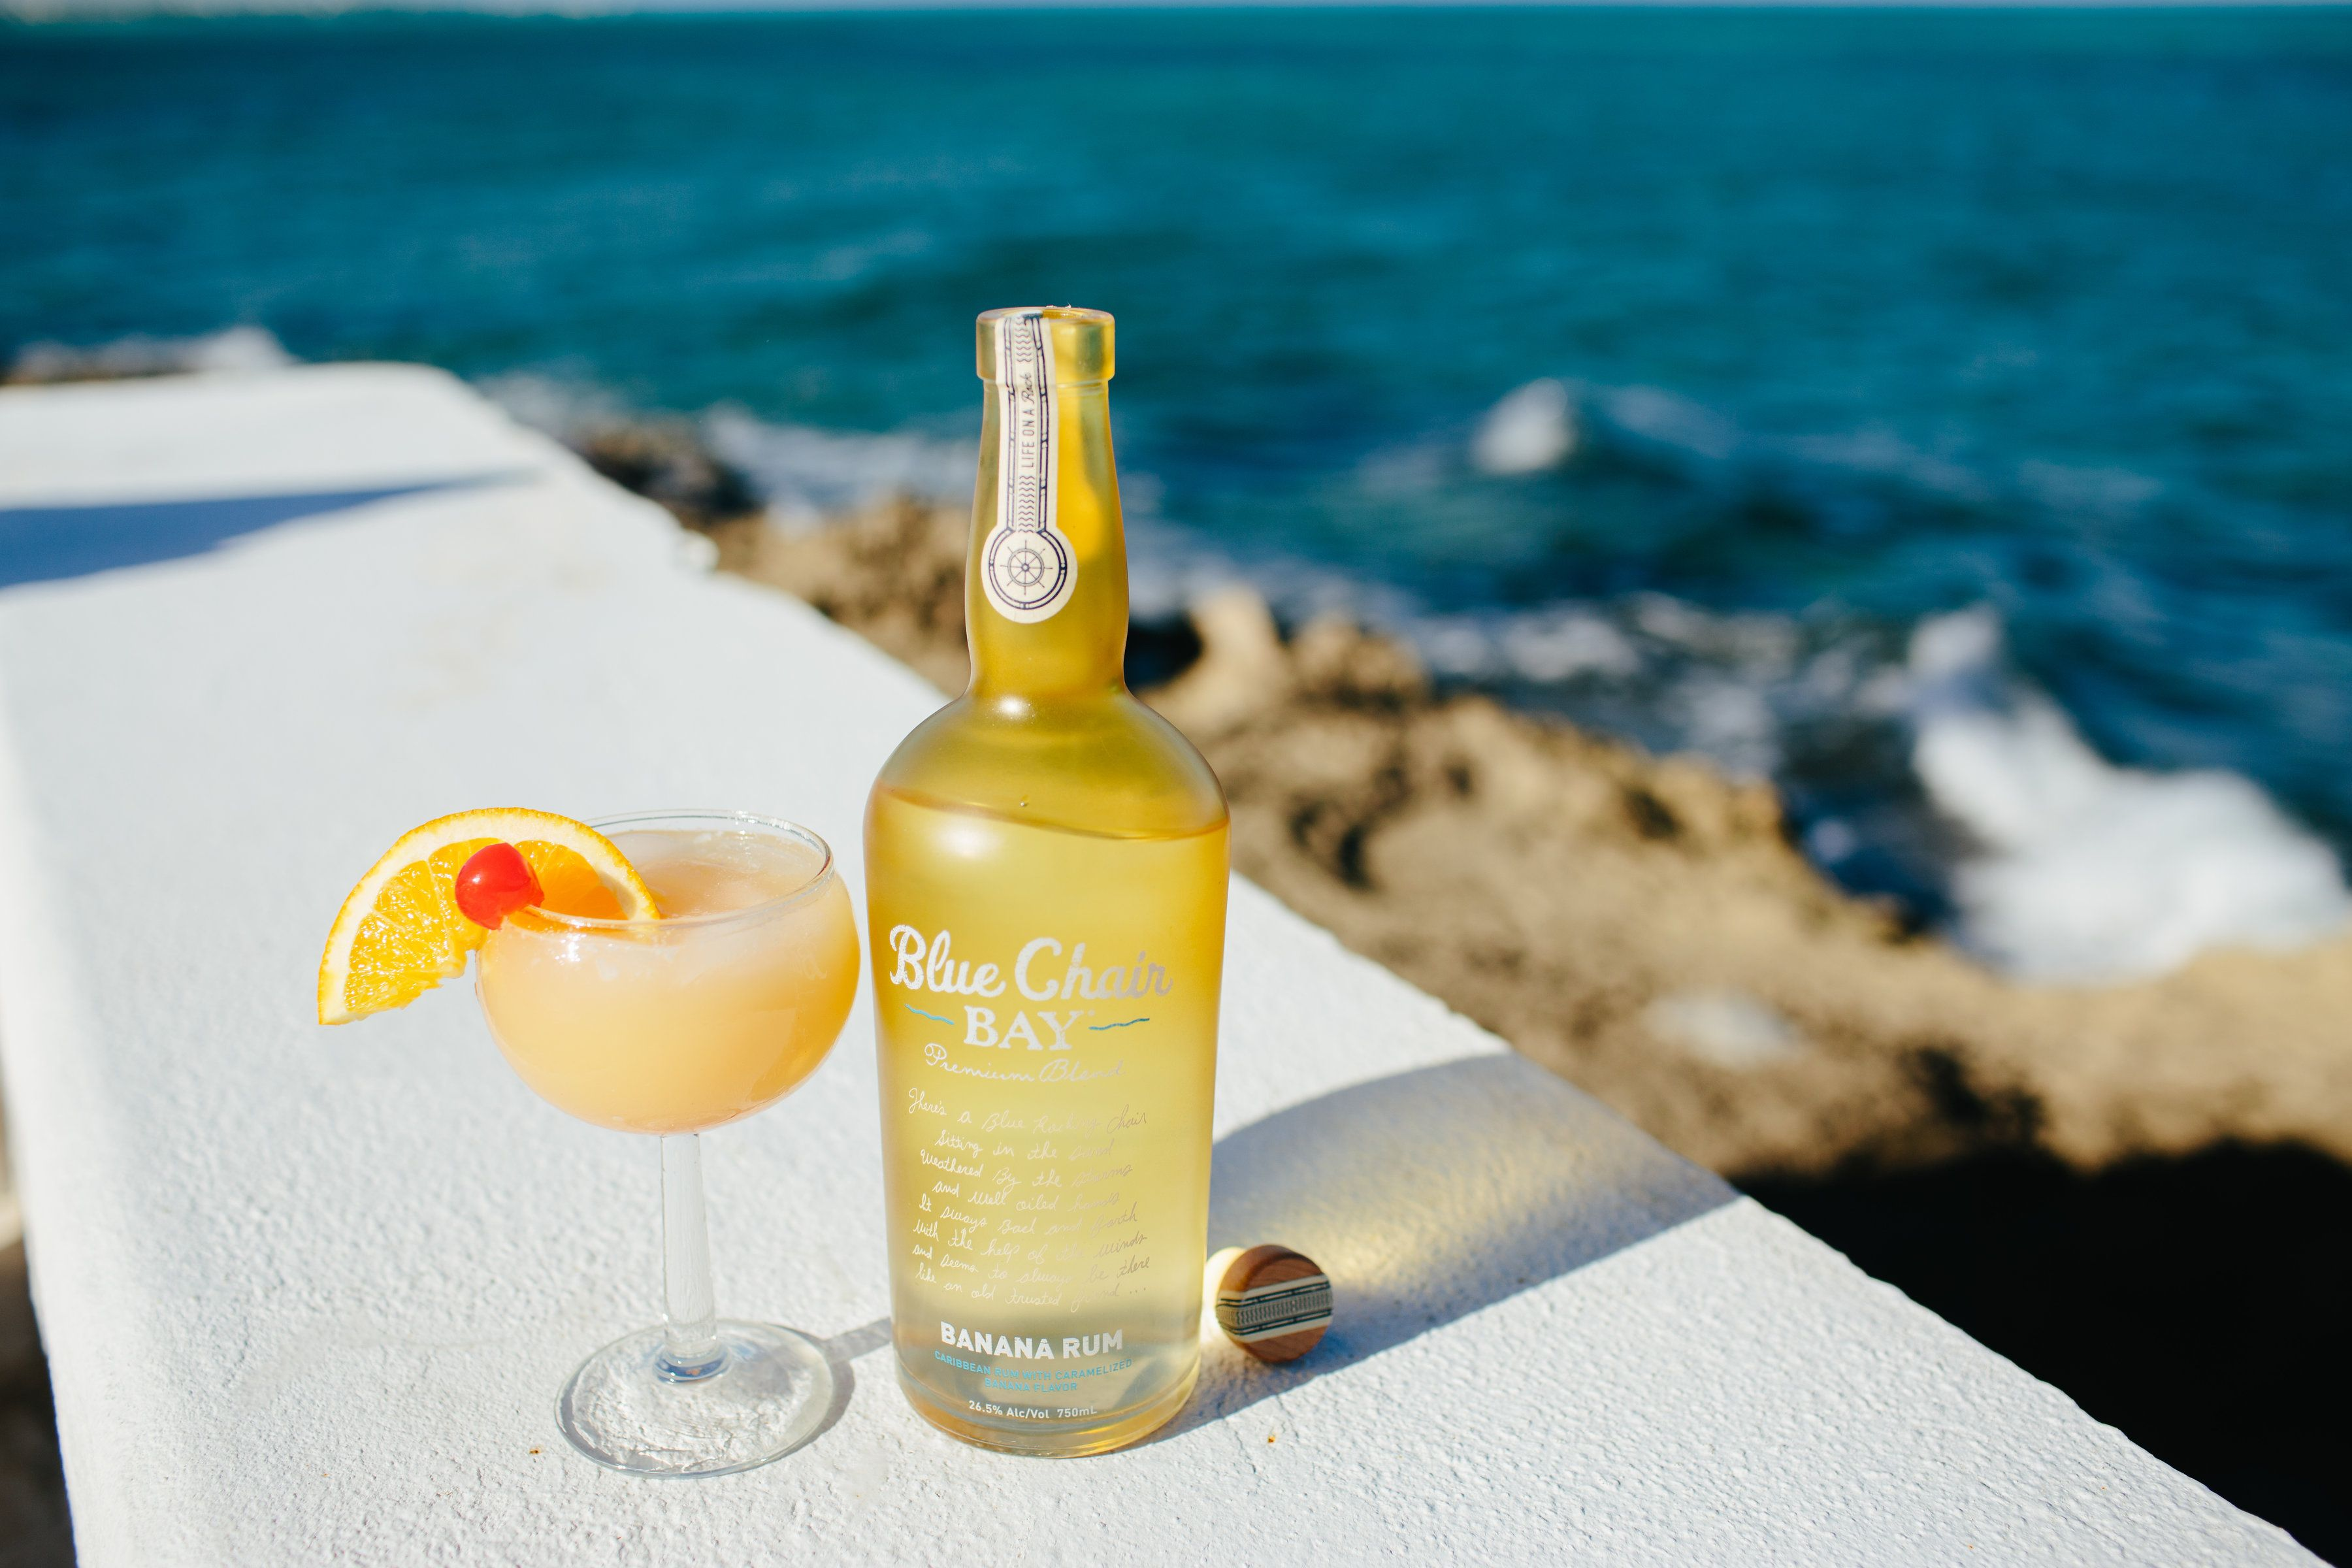 The Boozy Banana, made with Blue Chair Bay's Banana Rum 2